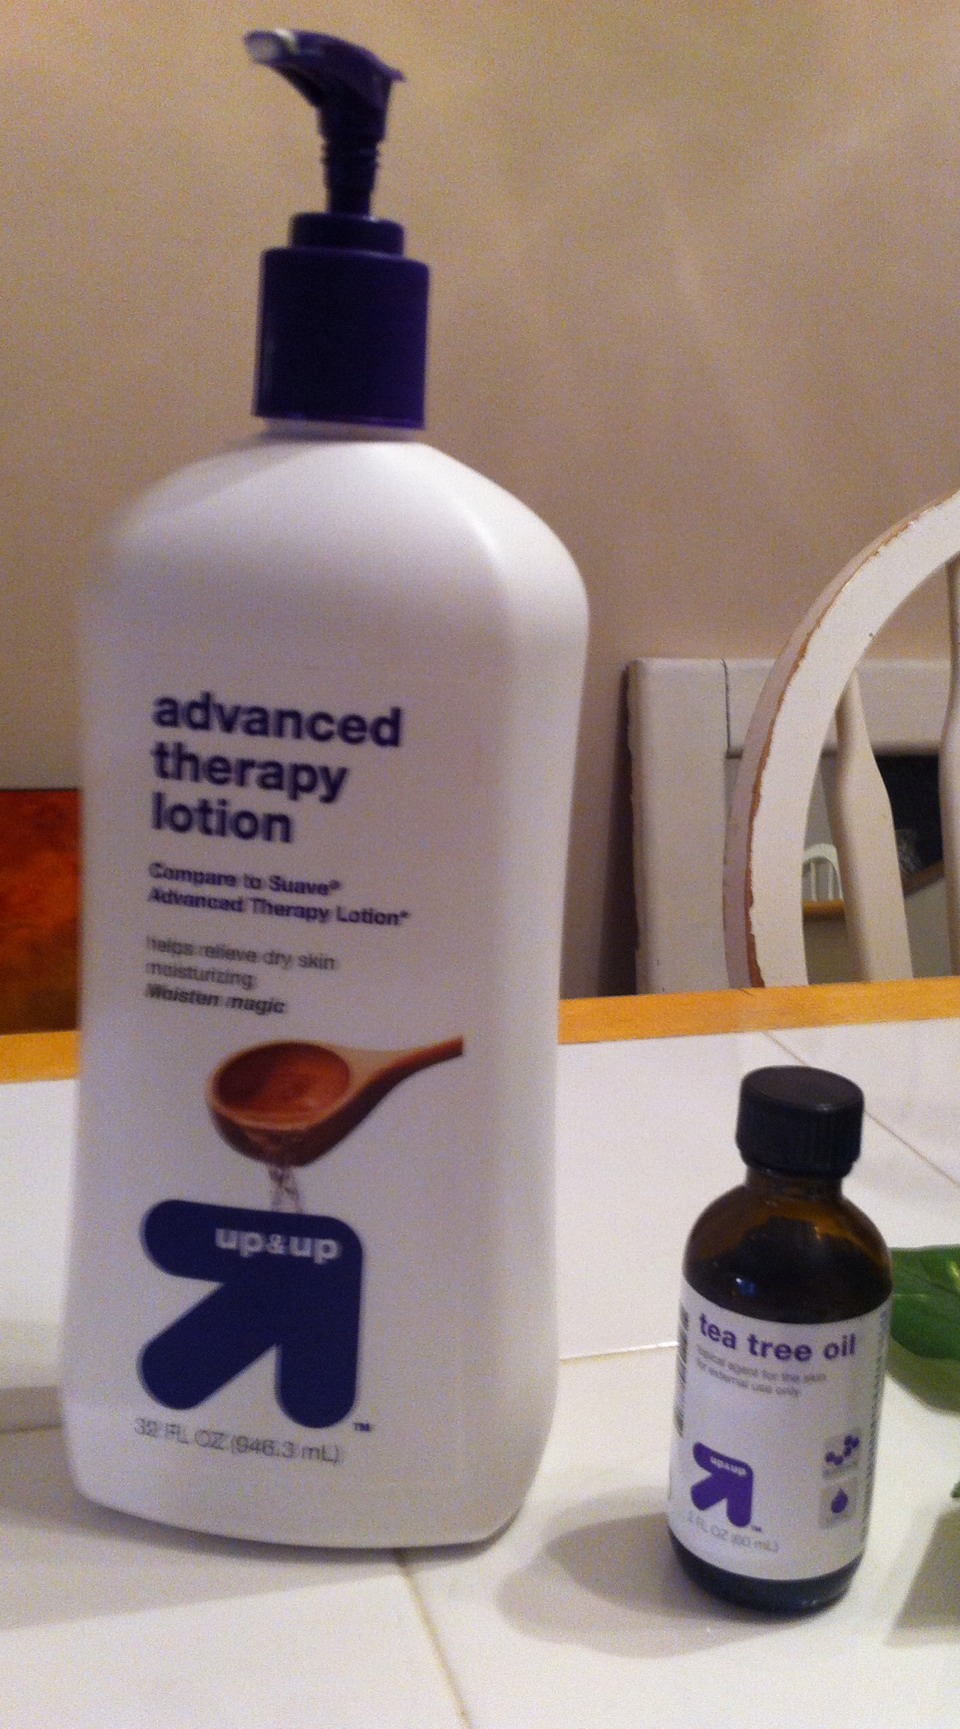 Winter can be killer on your scalp.   All you need is tea  tree oil and regular lotion. Which I got from Target.  You can use some sort of dropper to apply the oil to the scalp. Rub it in then apply lotion. Let it sit over night.   Do not use if you plan on going somewhere! Hair looks greasy!